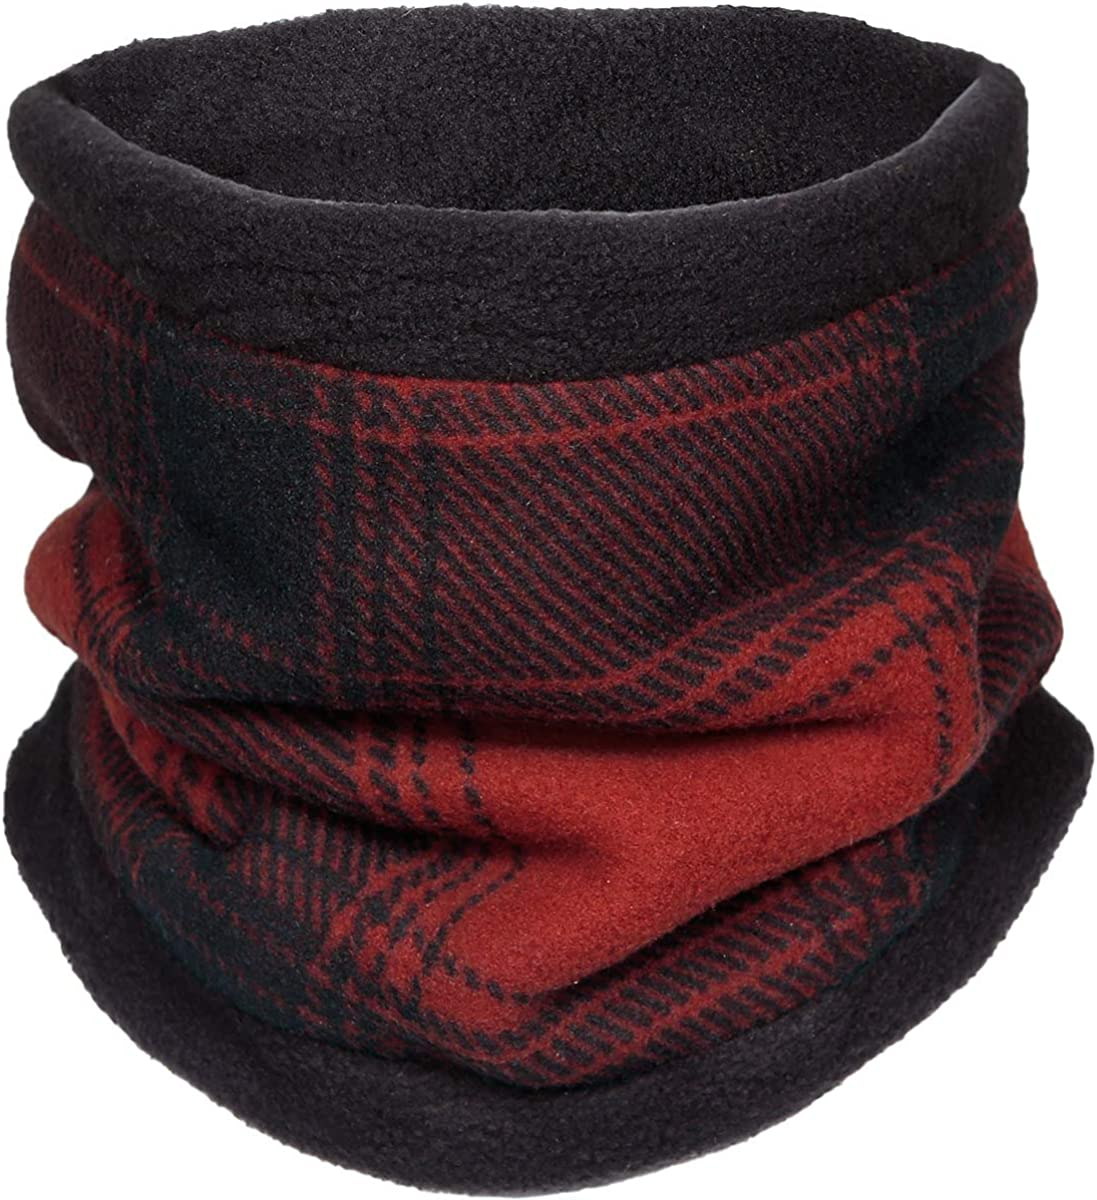 Fleece Winter Accessory Plaid Stormy Kromer The SK Neck Warmer Warm Cold Weather Gear